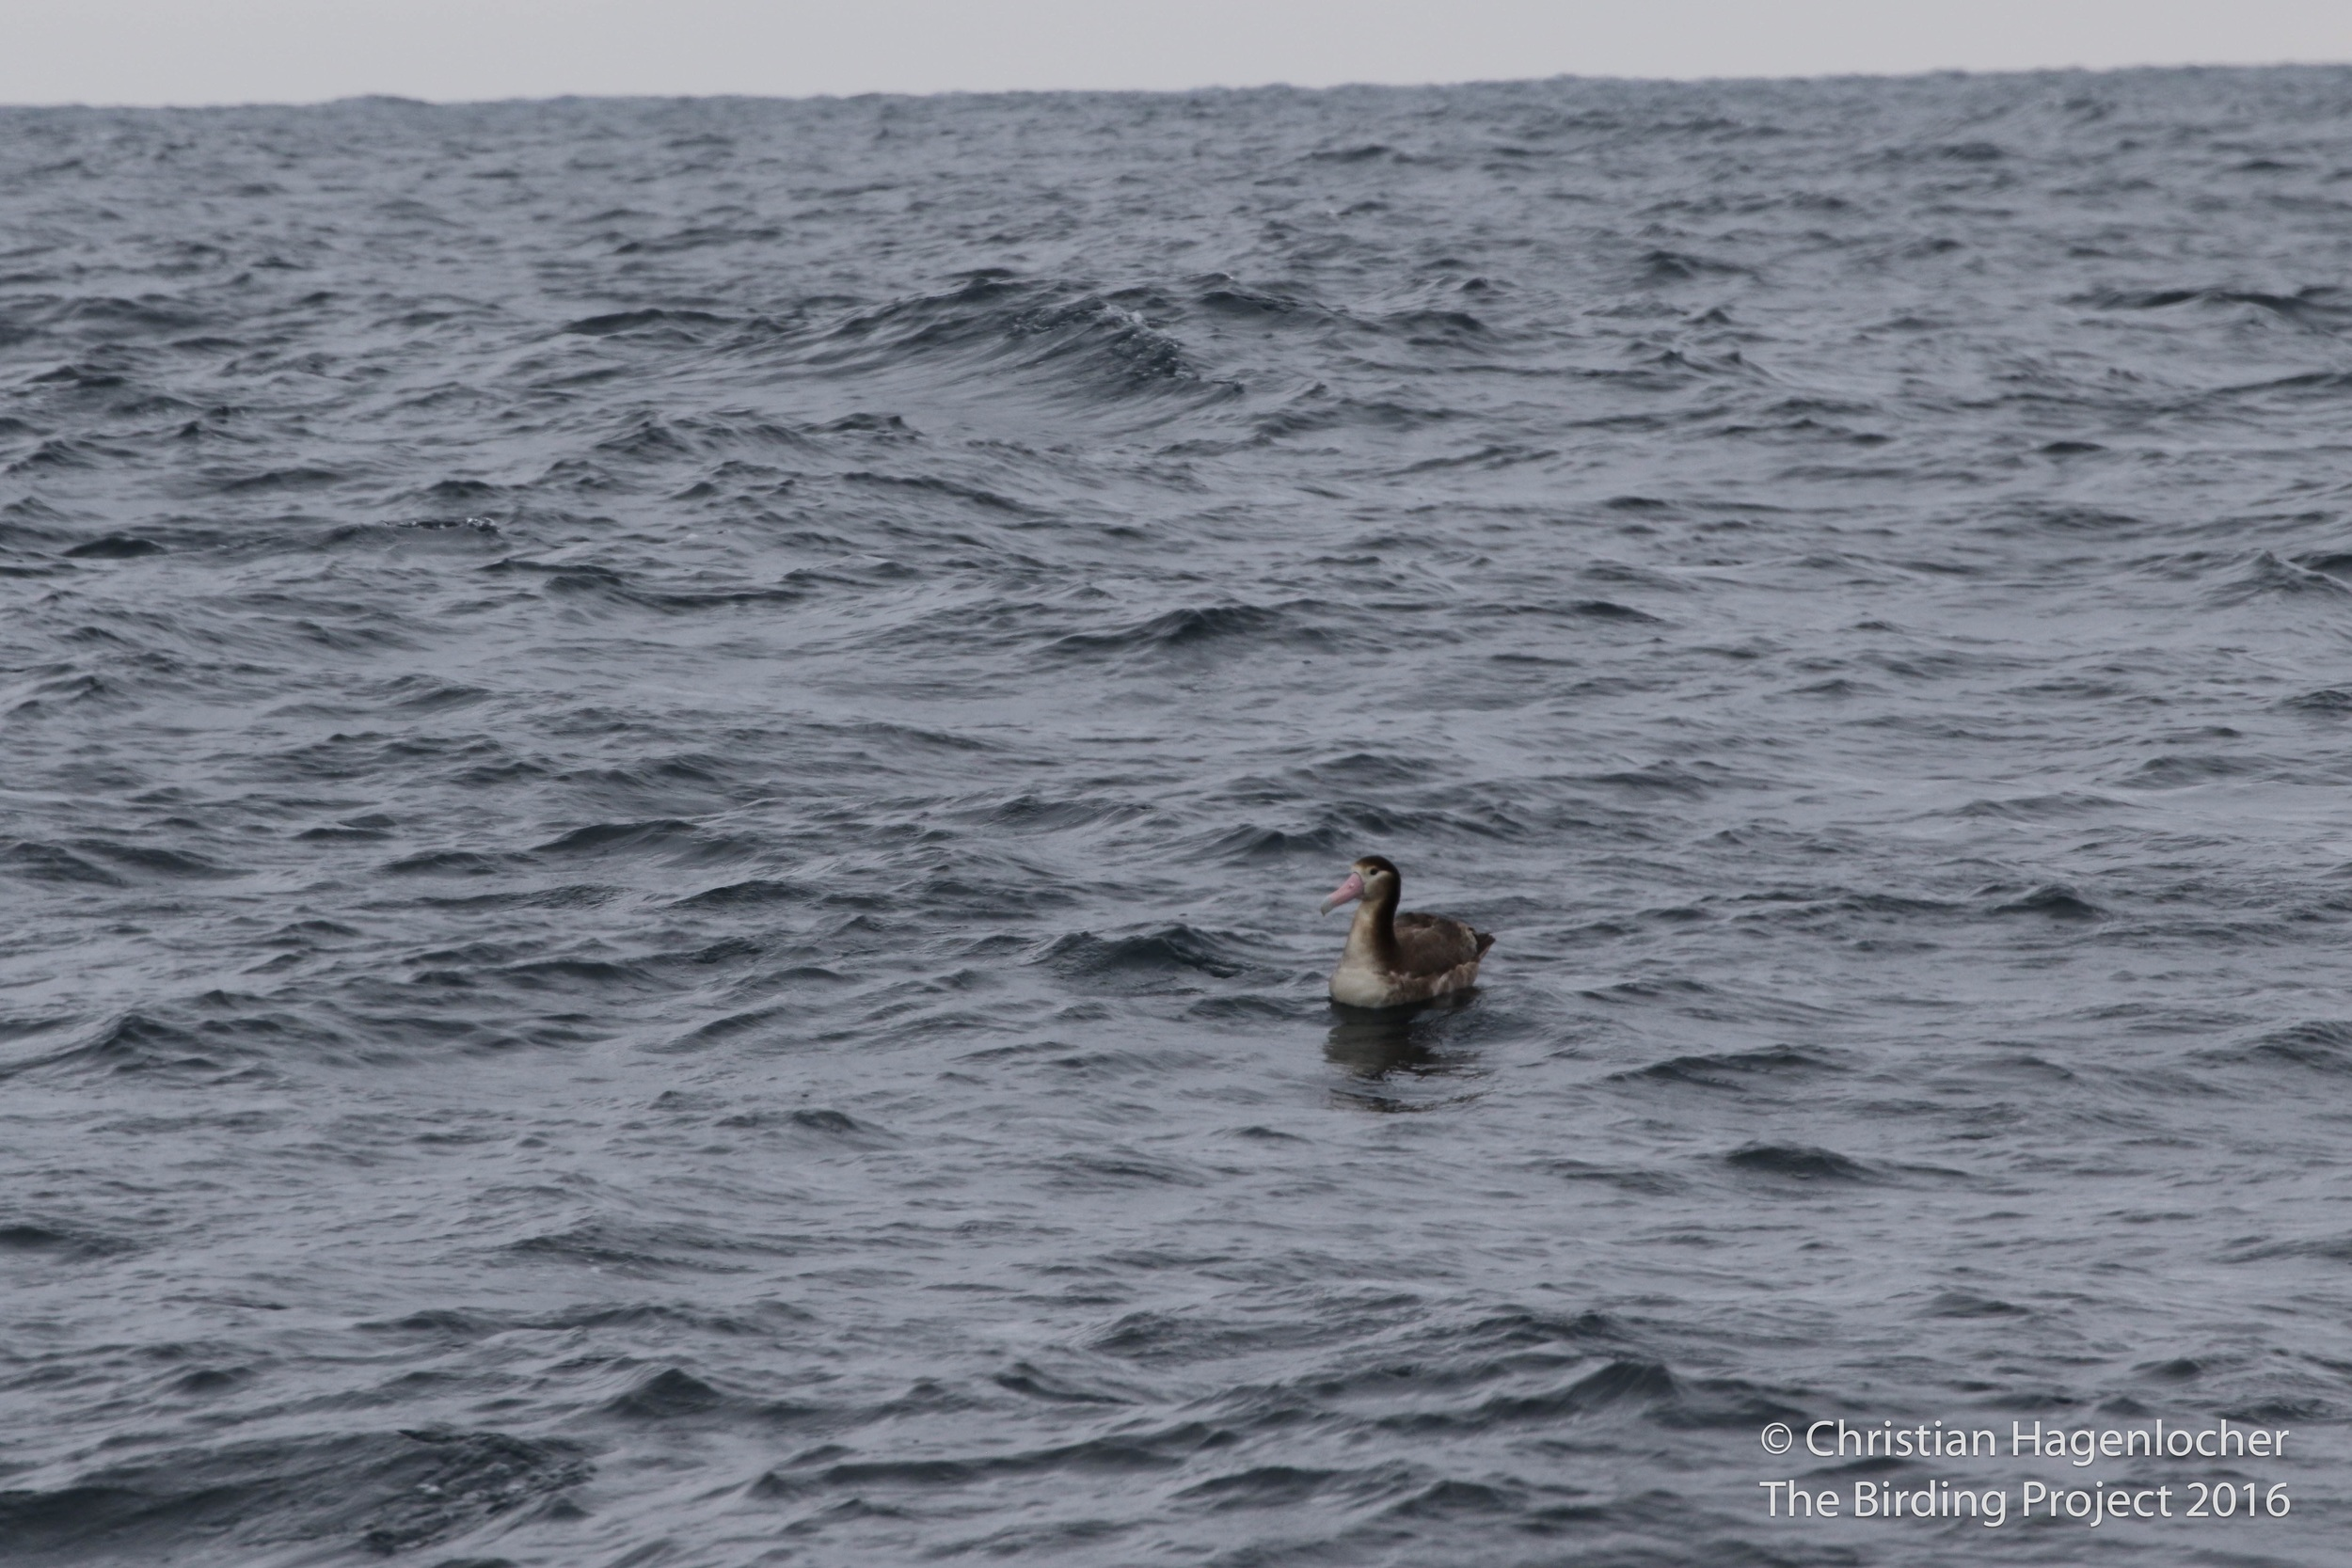 Short-tailed Albatross, found only in this stretch of water along the Aleutians